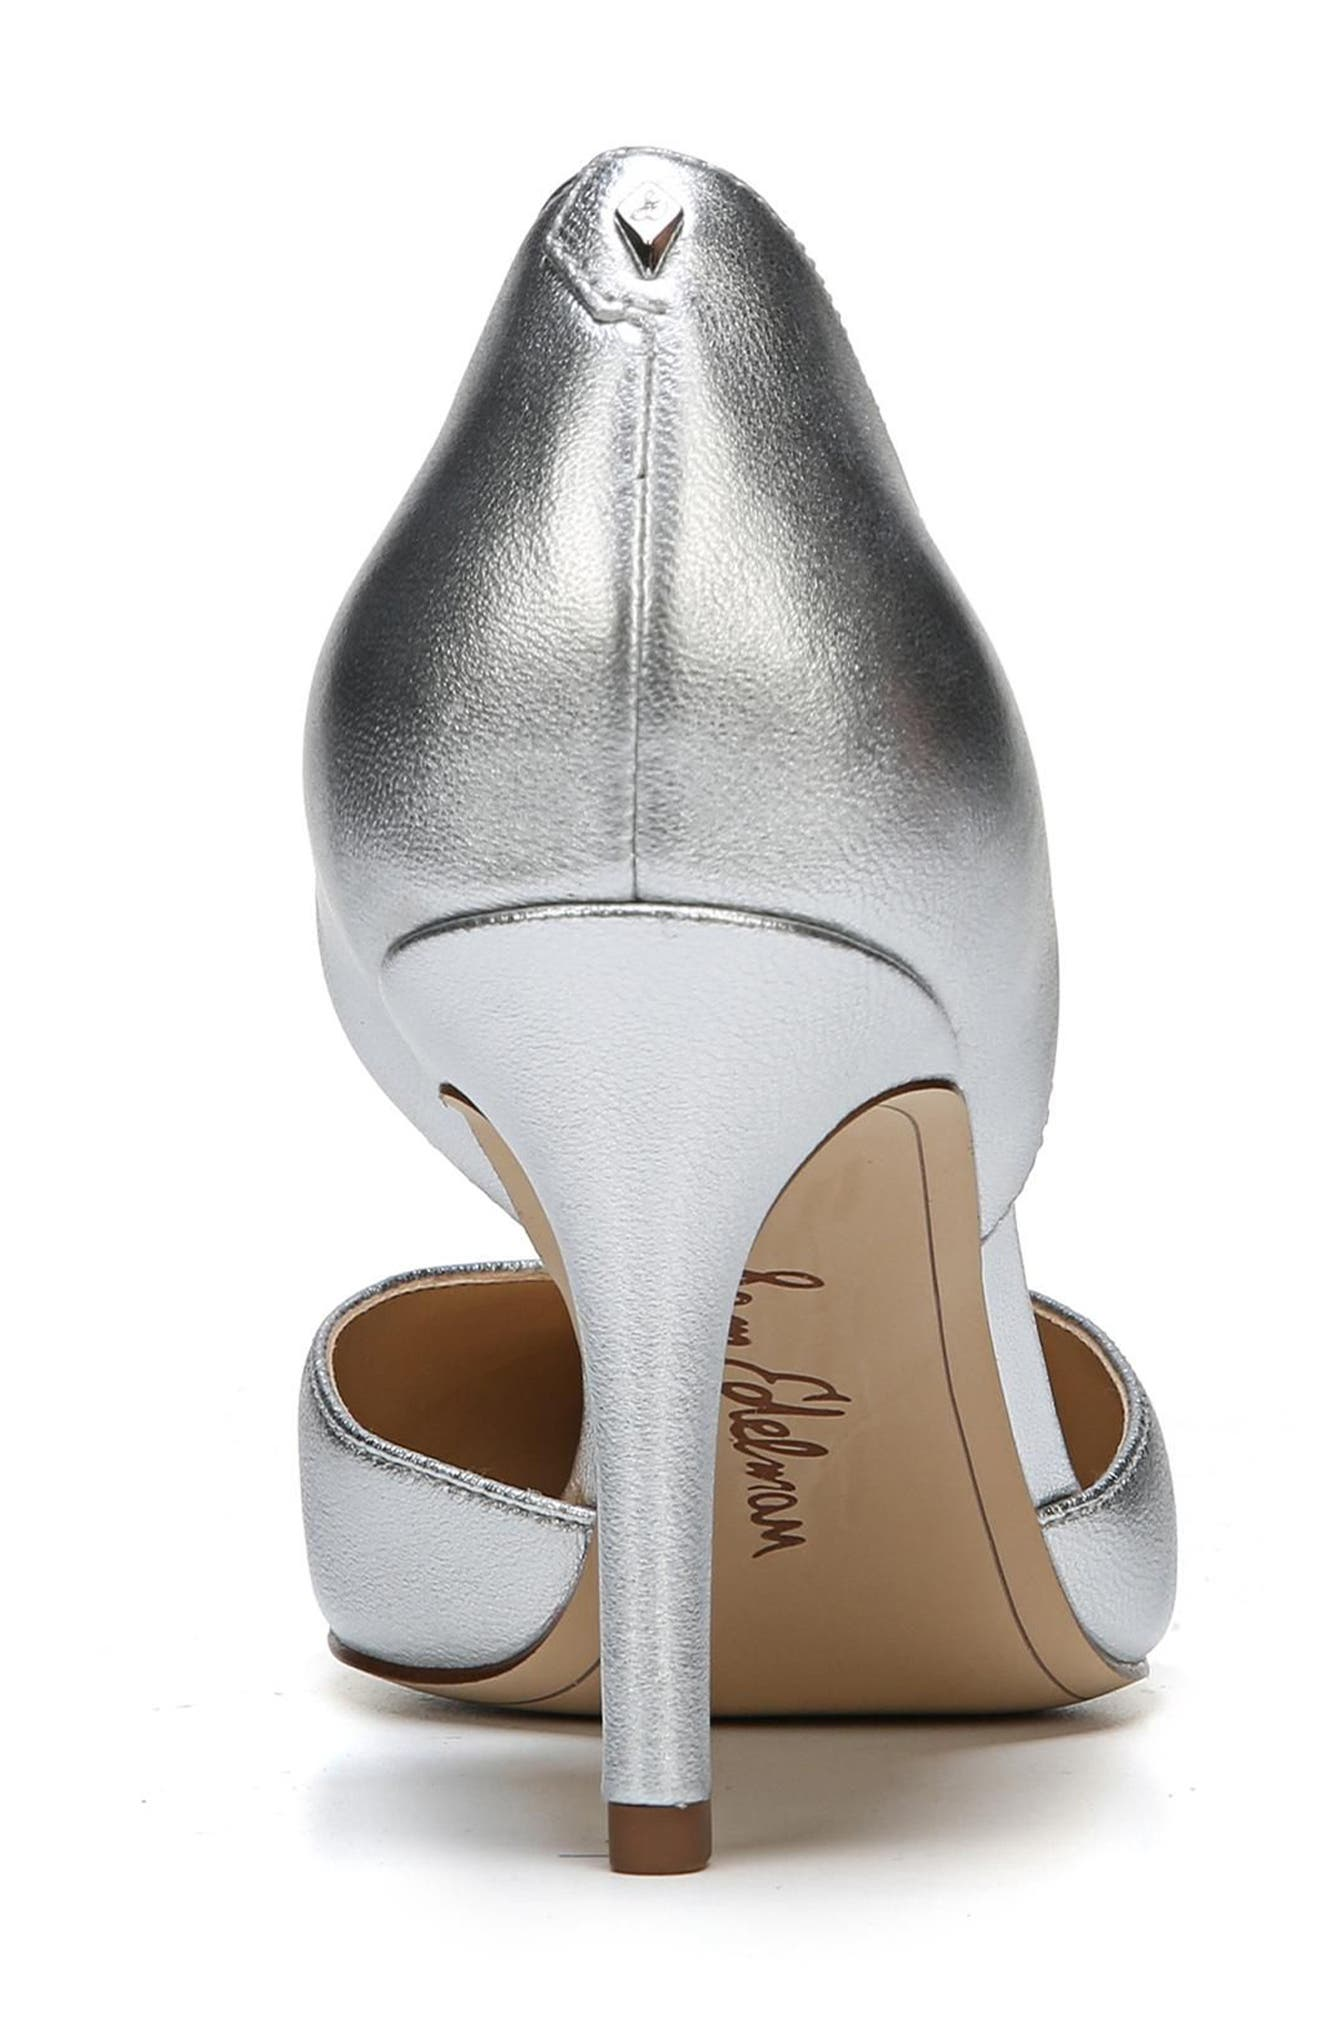 'Telsa' d'Orsay Pointy Toe Pump,                             Alternate thumbnail 7, color,                             040